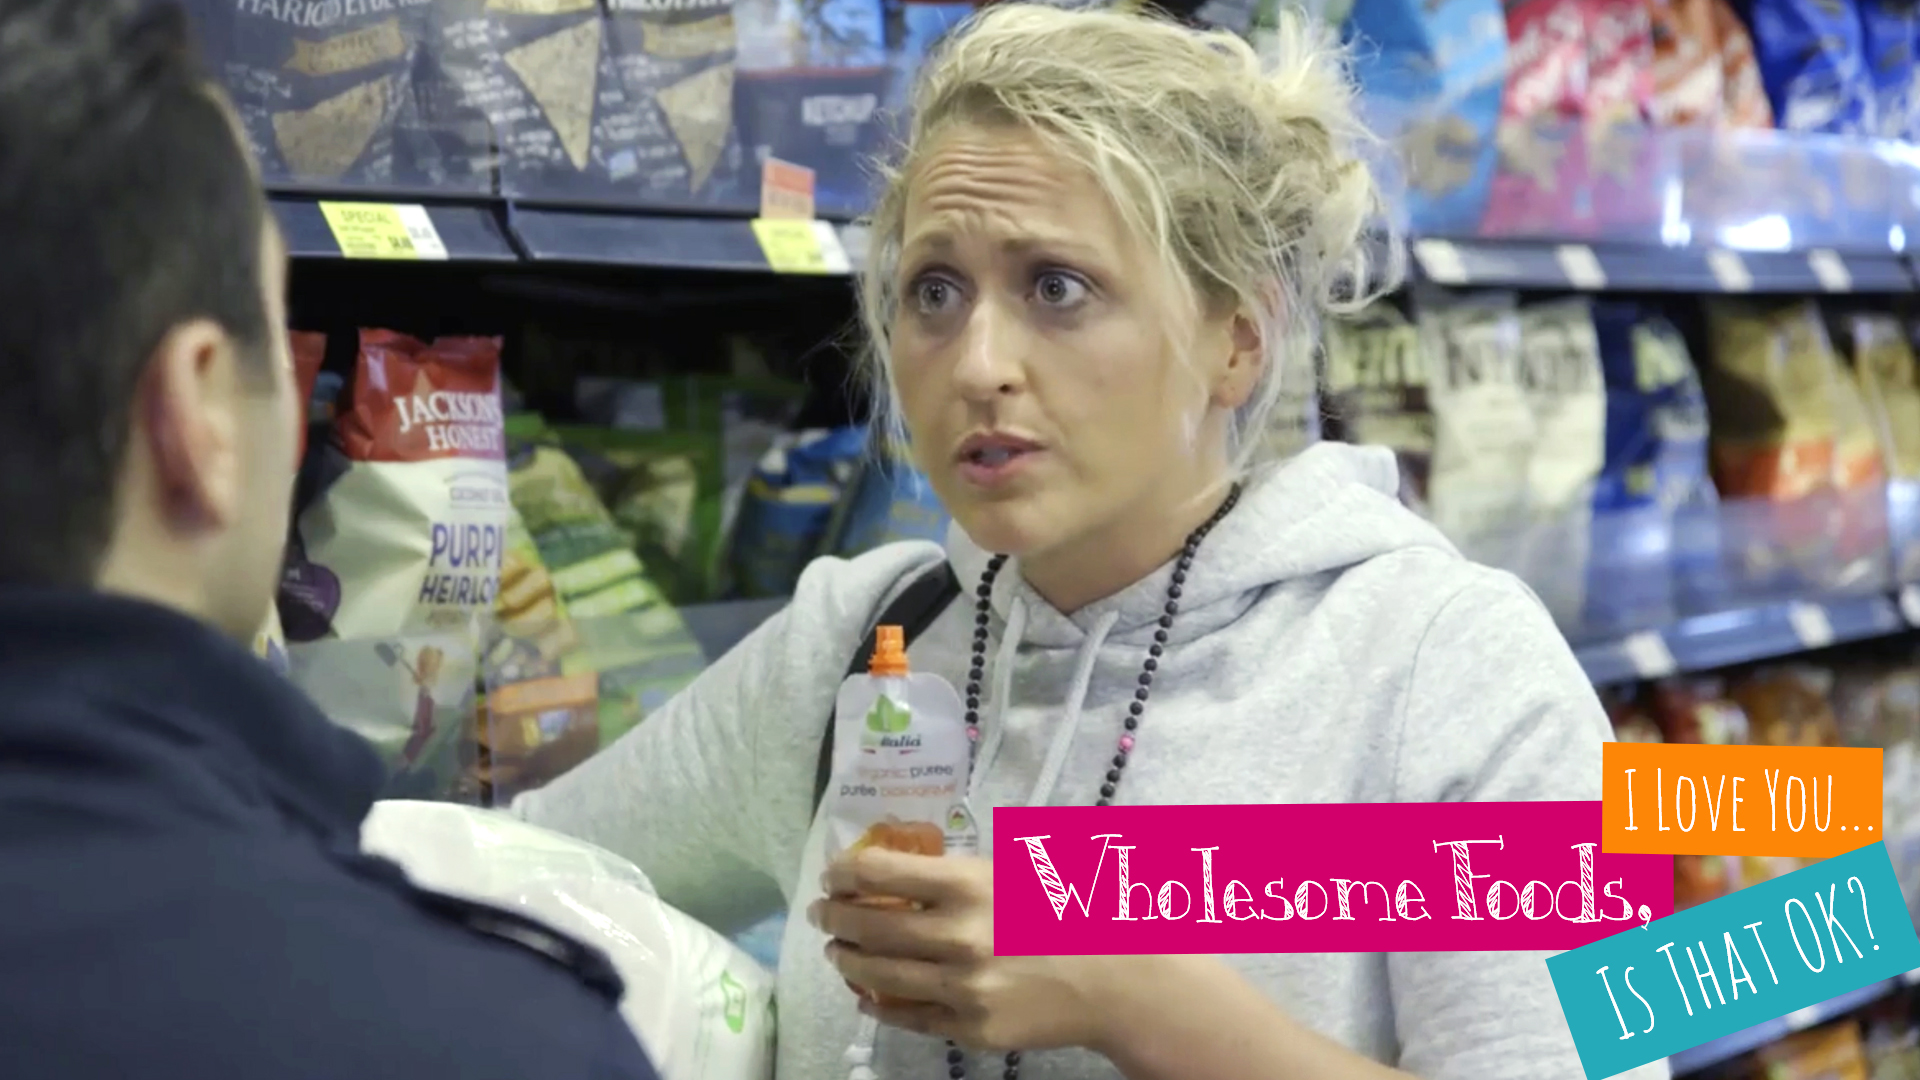 """Showrunner Krista Hovsepian as """"Julia"""" in Wholesome Foods, I Love You... Is That OK?"""